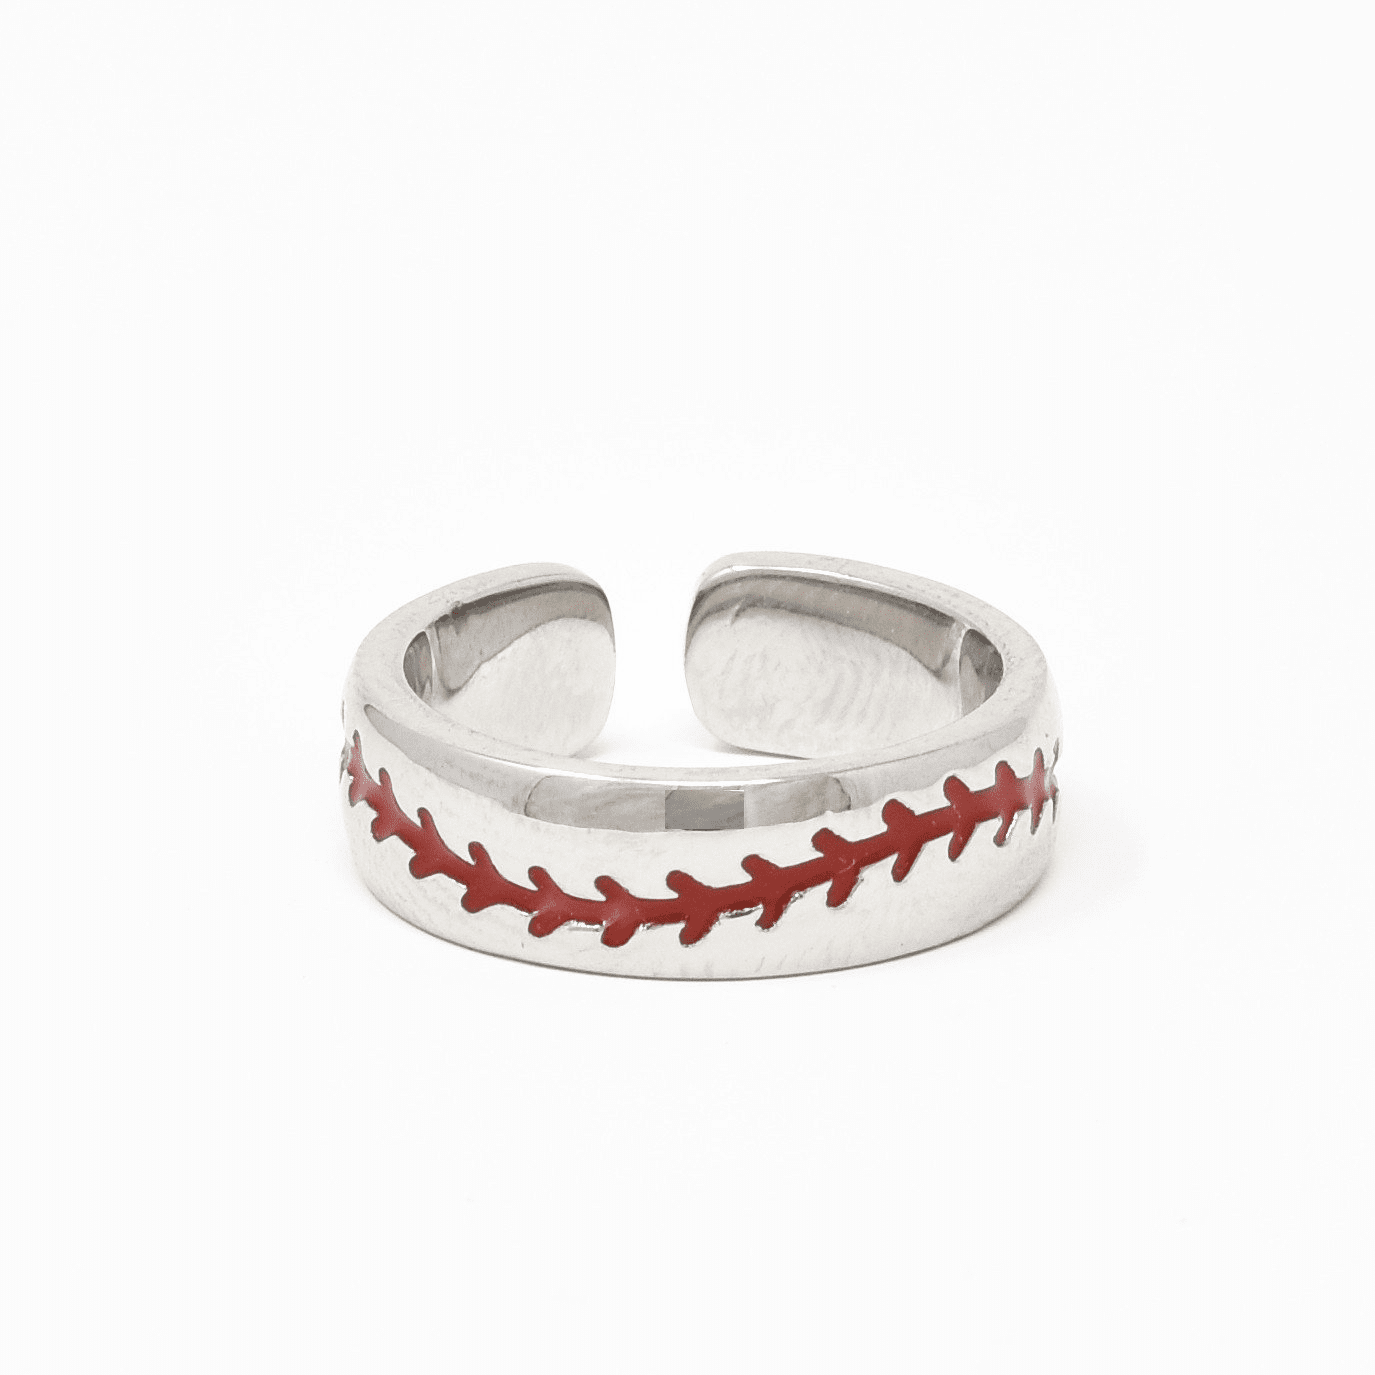 Baseball Seam Ring<br>ONLY 2 LEFT!